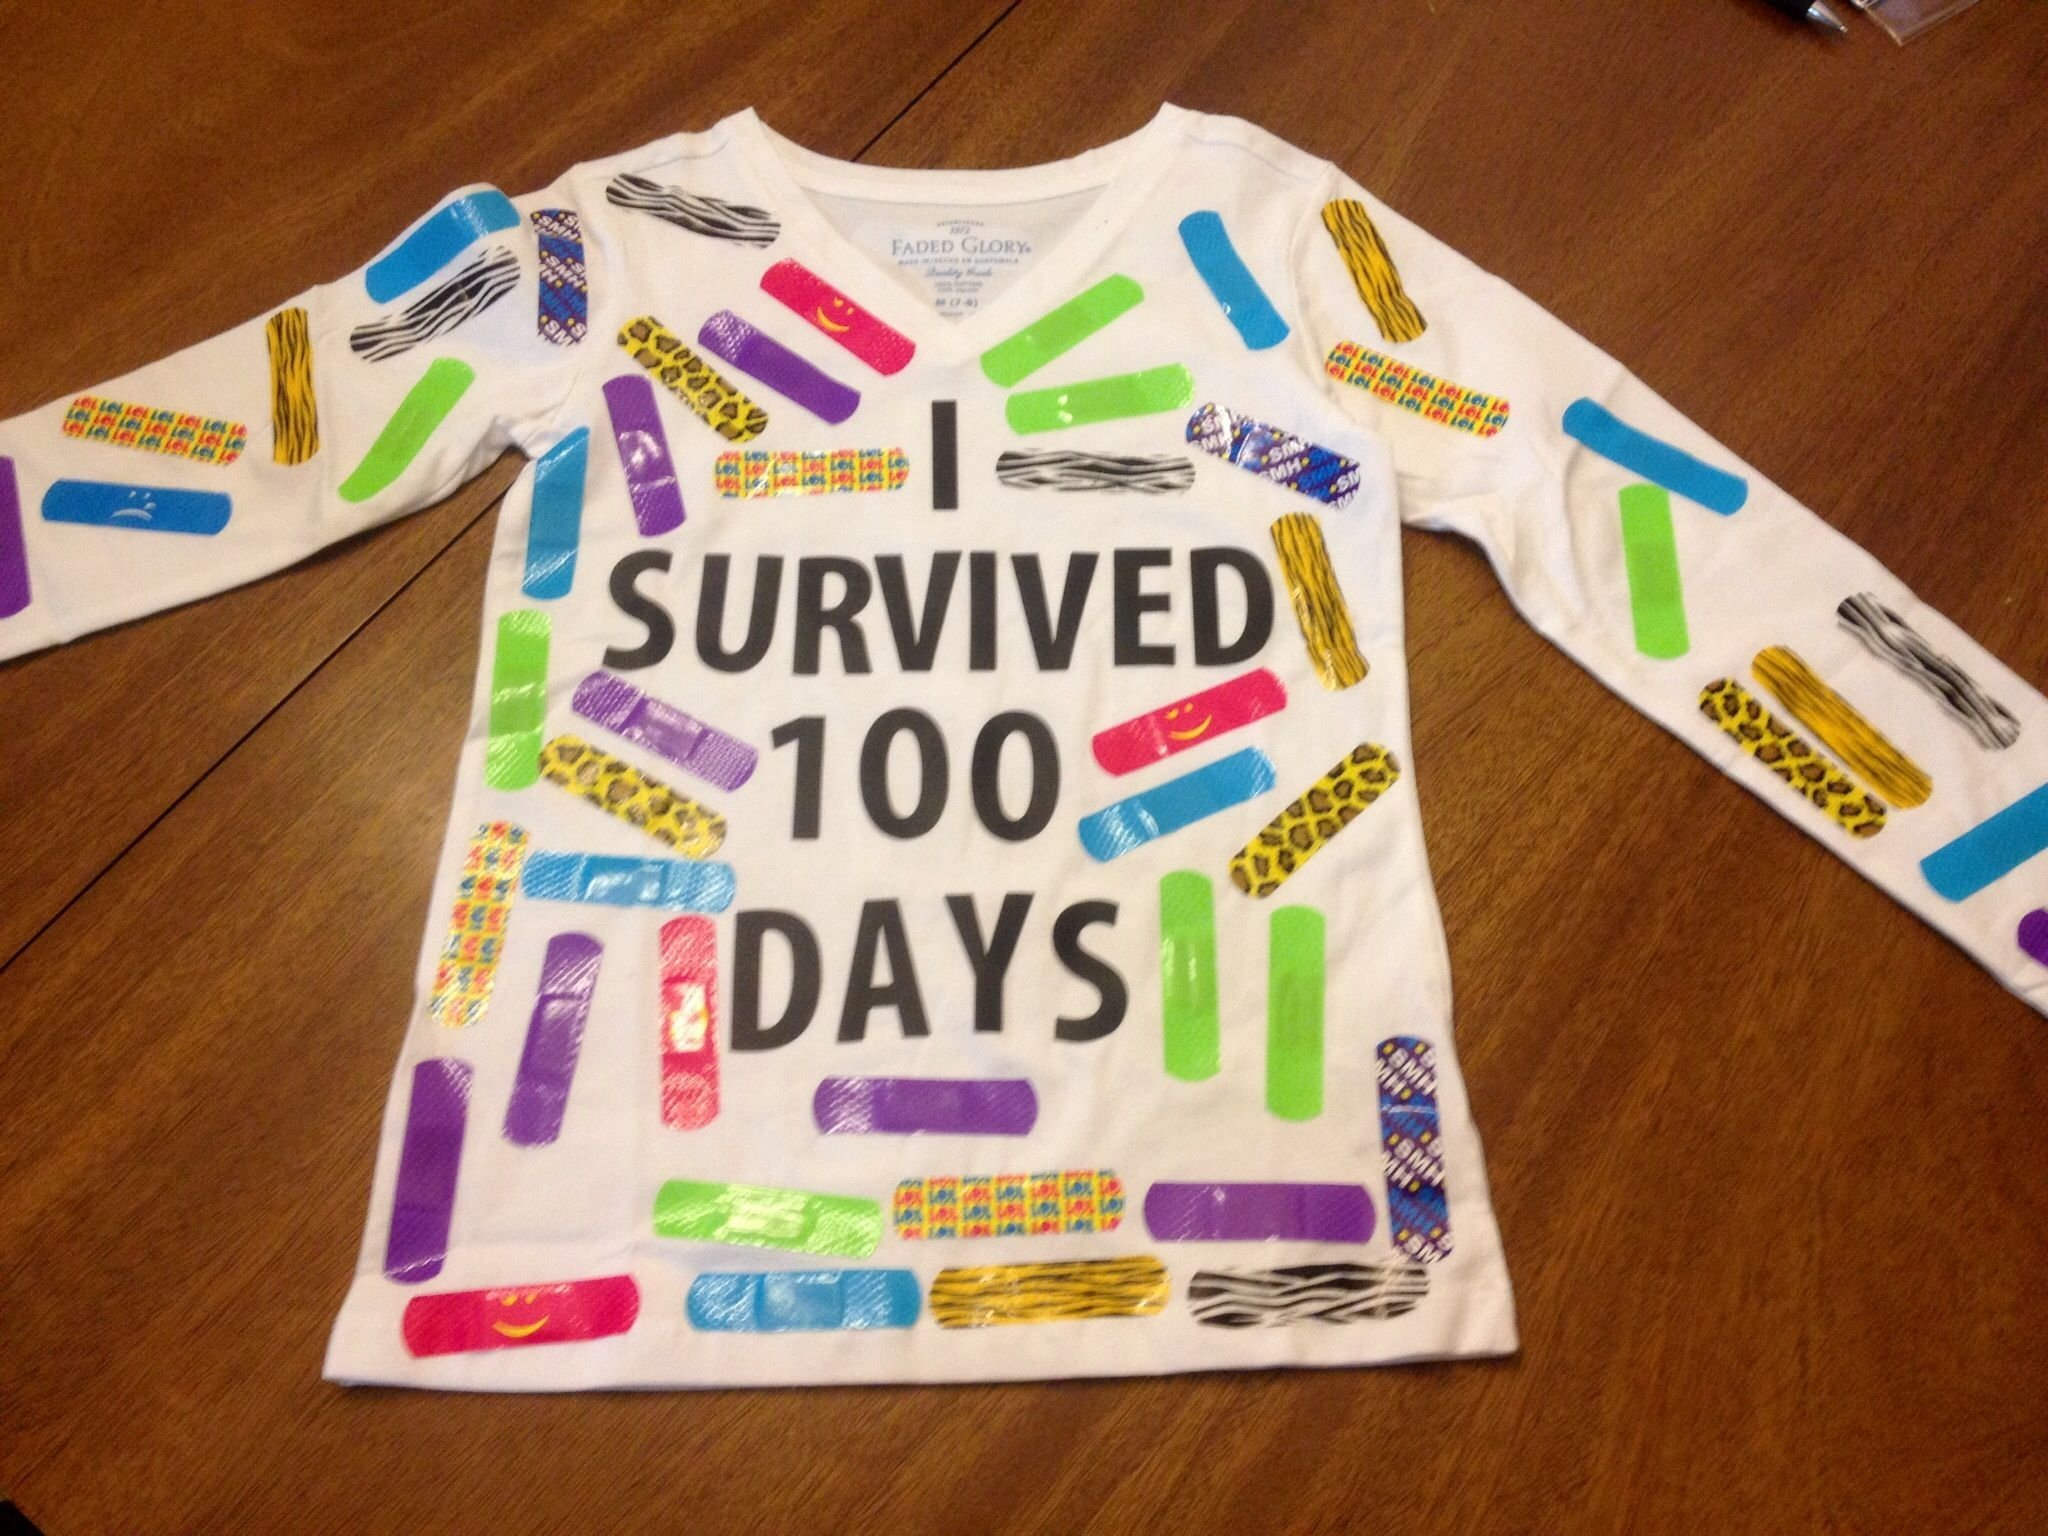 100 days of school tshirt with 100 colorful band aids. used vinyl